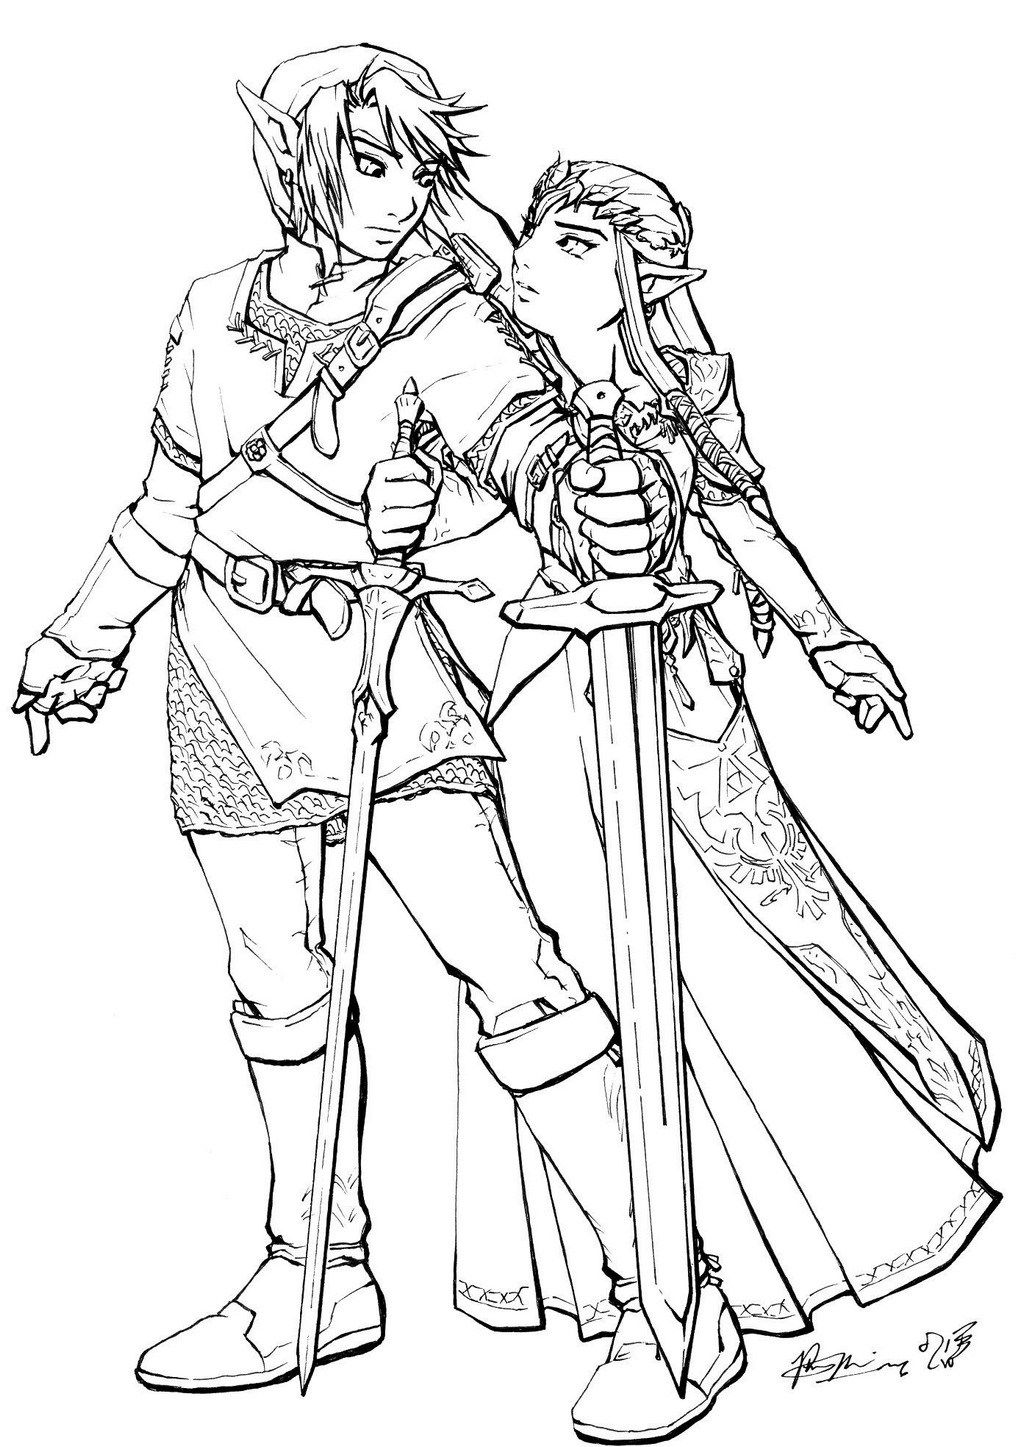 Link And Zelda Coloring Page Princess coloring pages